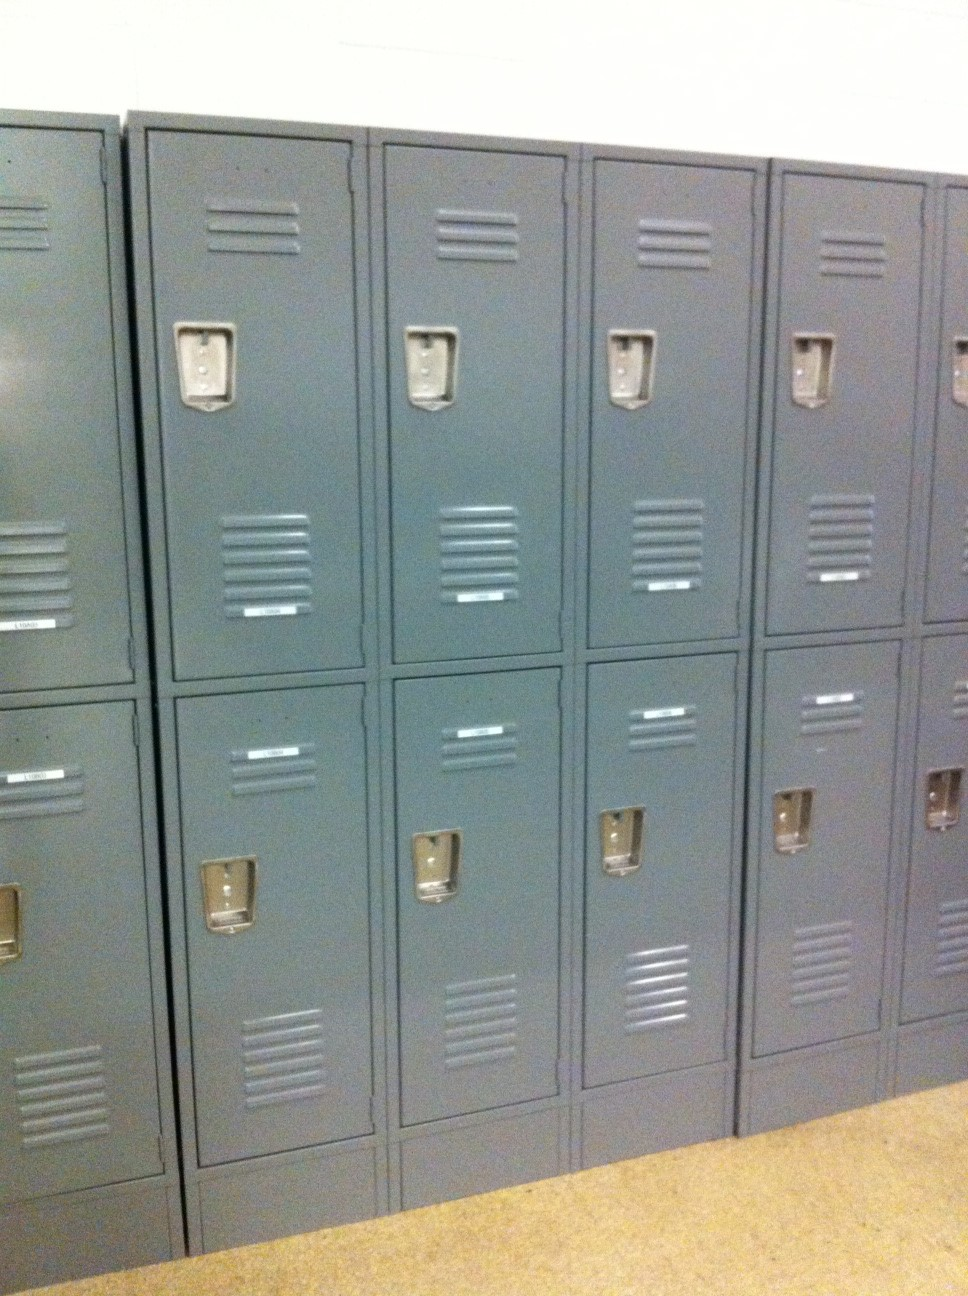 Replacement Locks for Lockers | Penco Lockers | Paramount Lockers